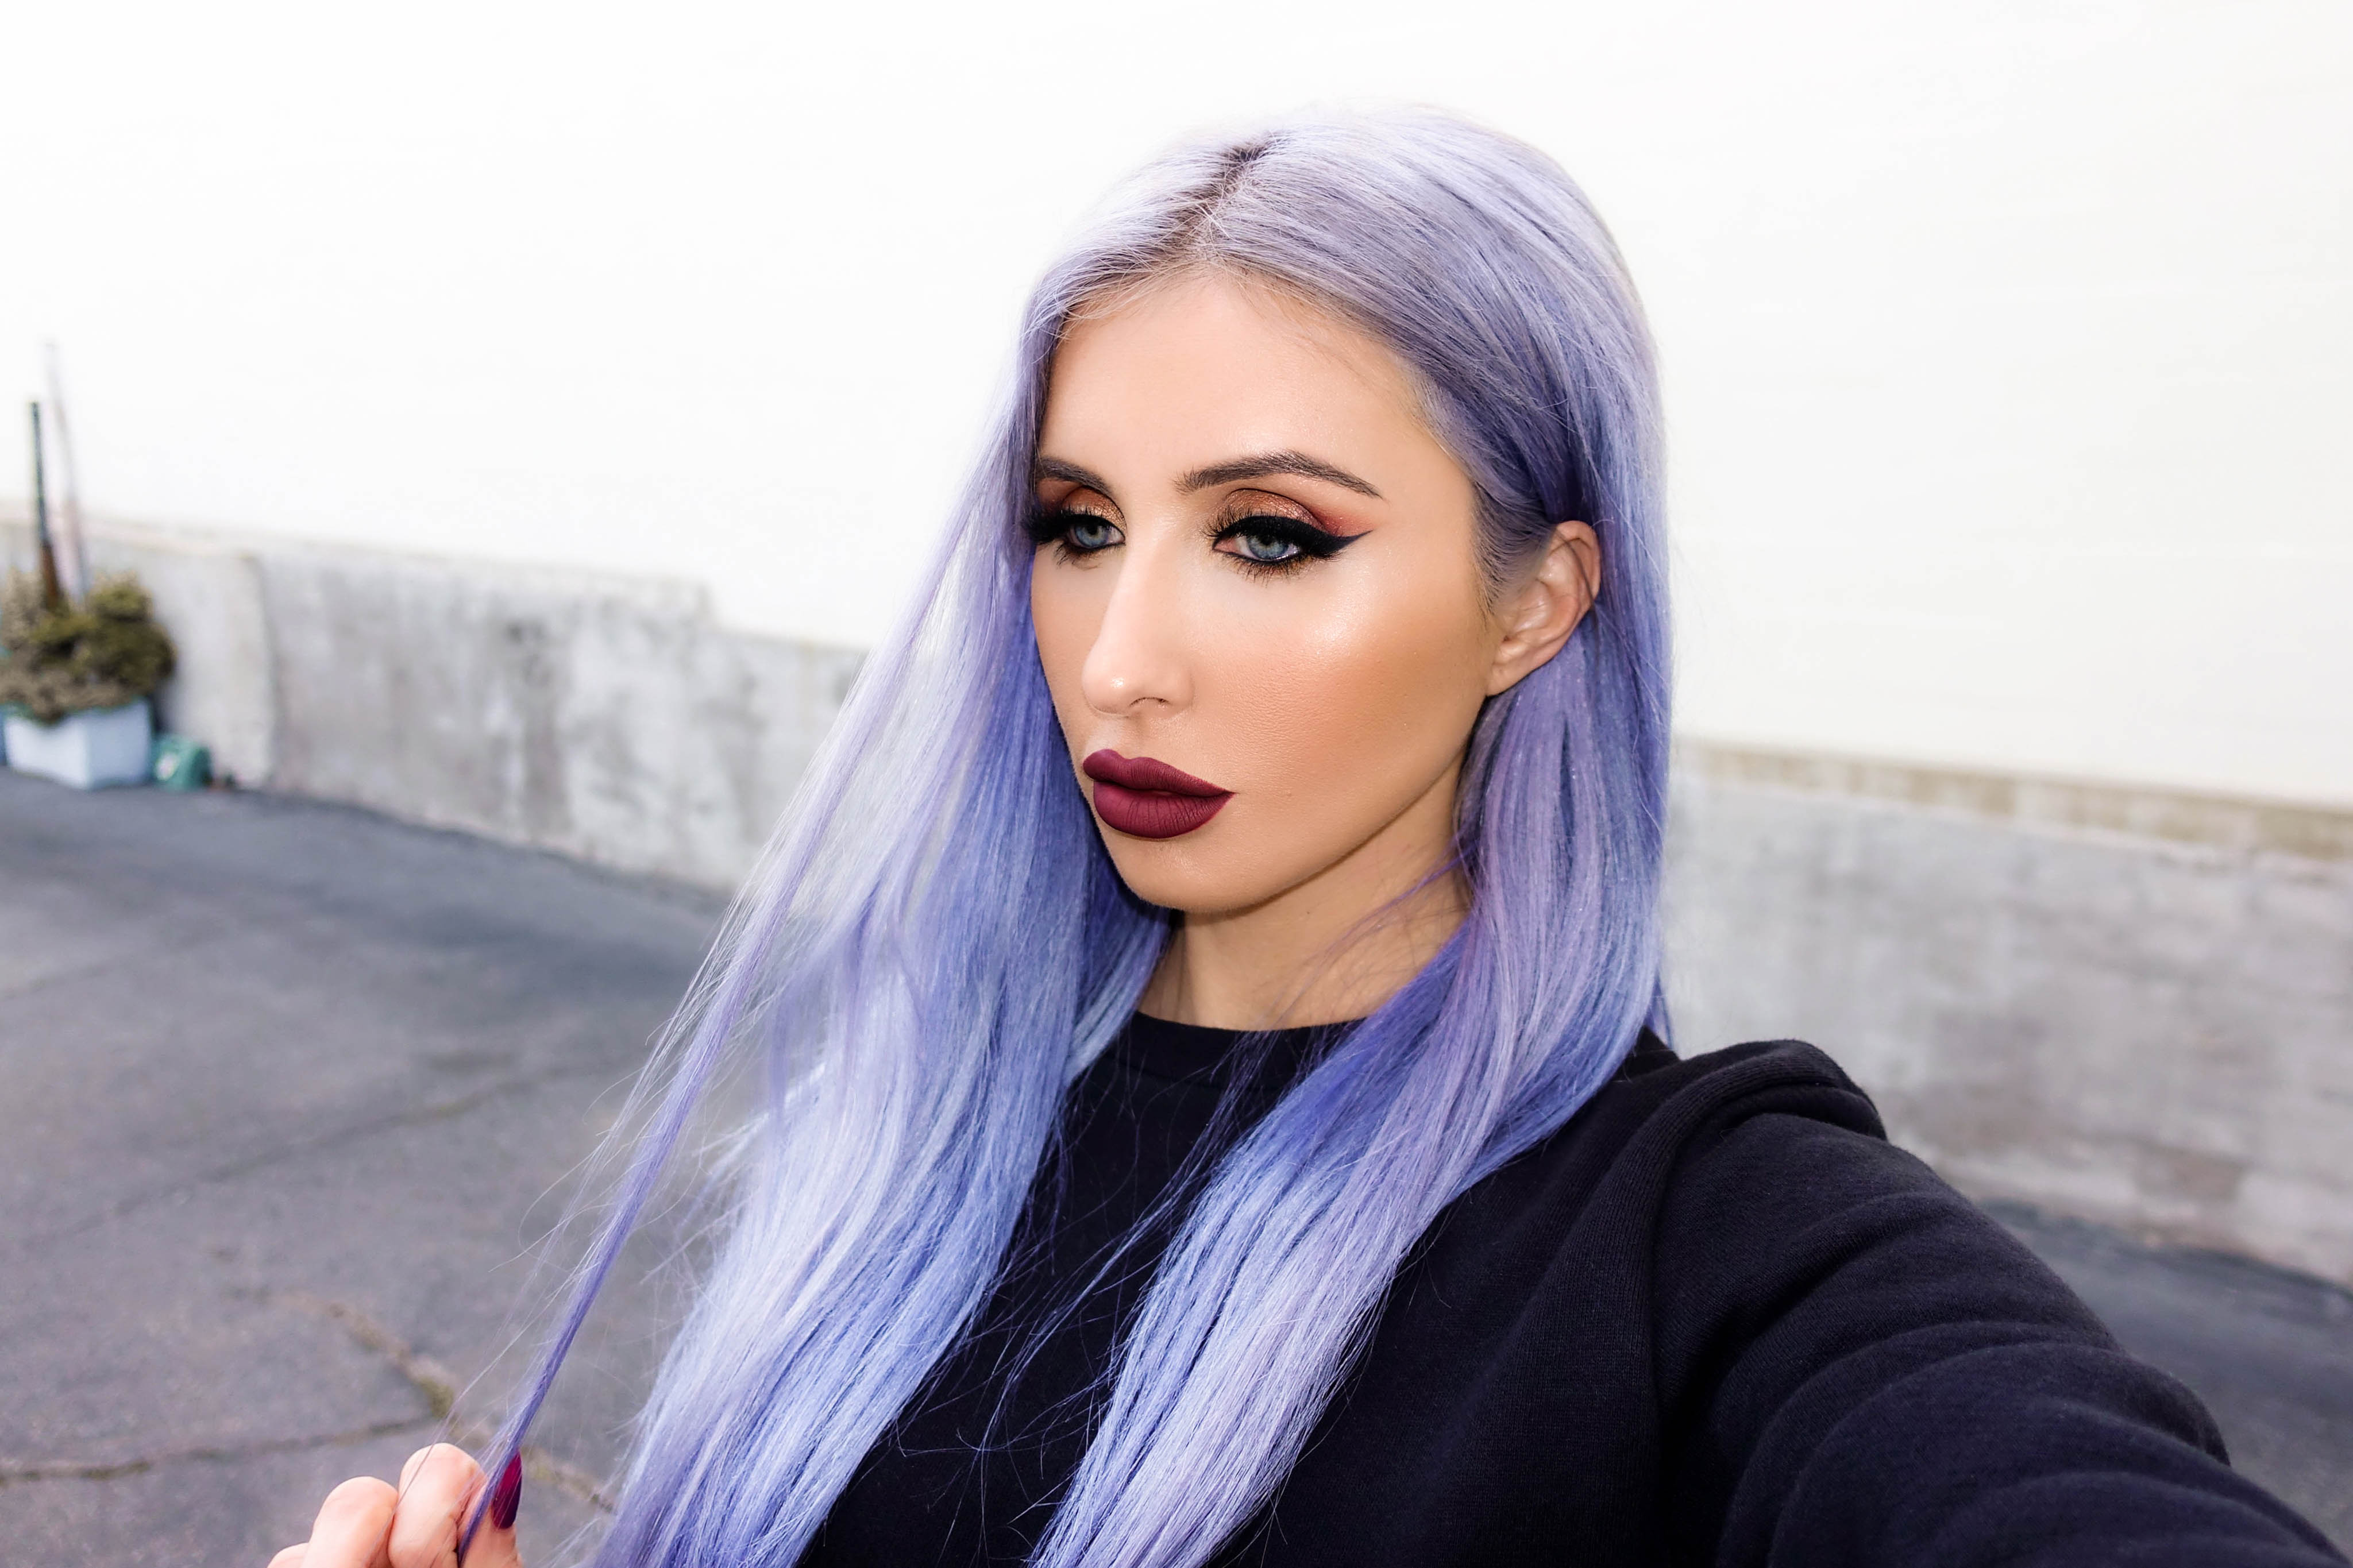 free online dating & chat in beverly hills Free dating sites no credit card - online dating  chat online with  speed dating is a concept first introduced as an event in 1998 to pete caf in beverly hills.